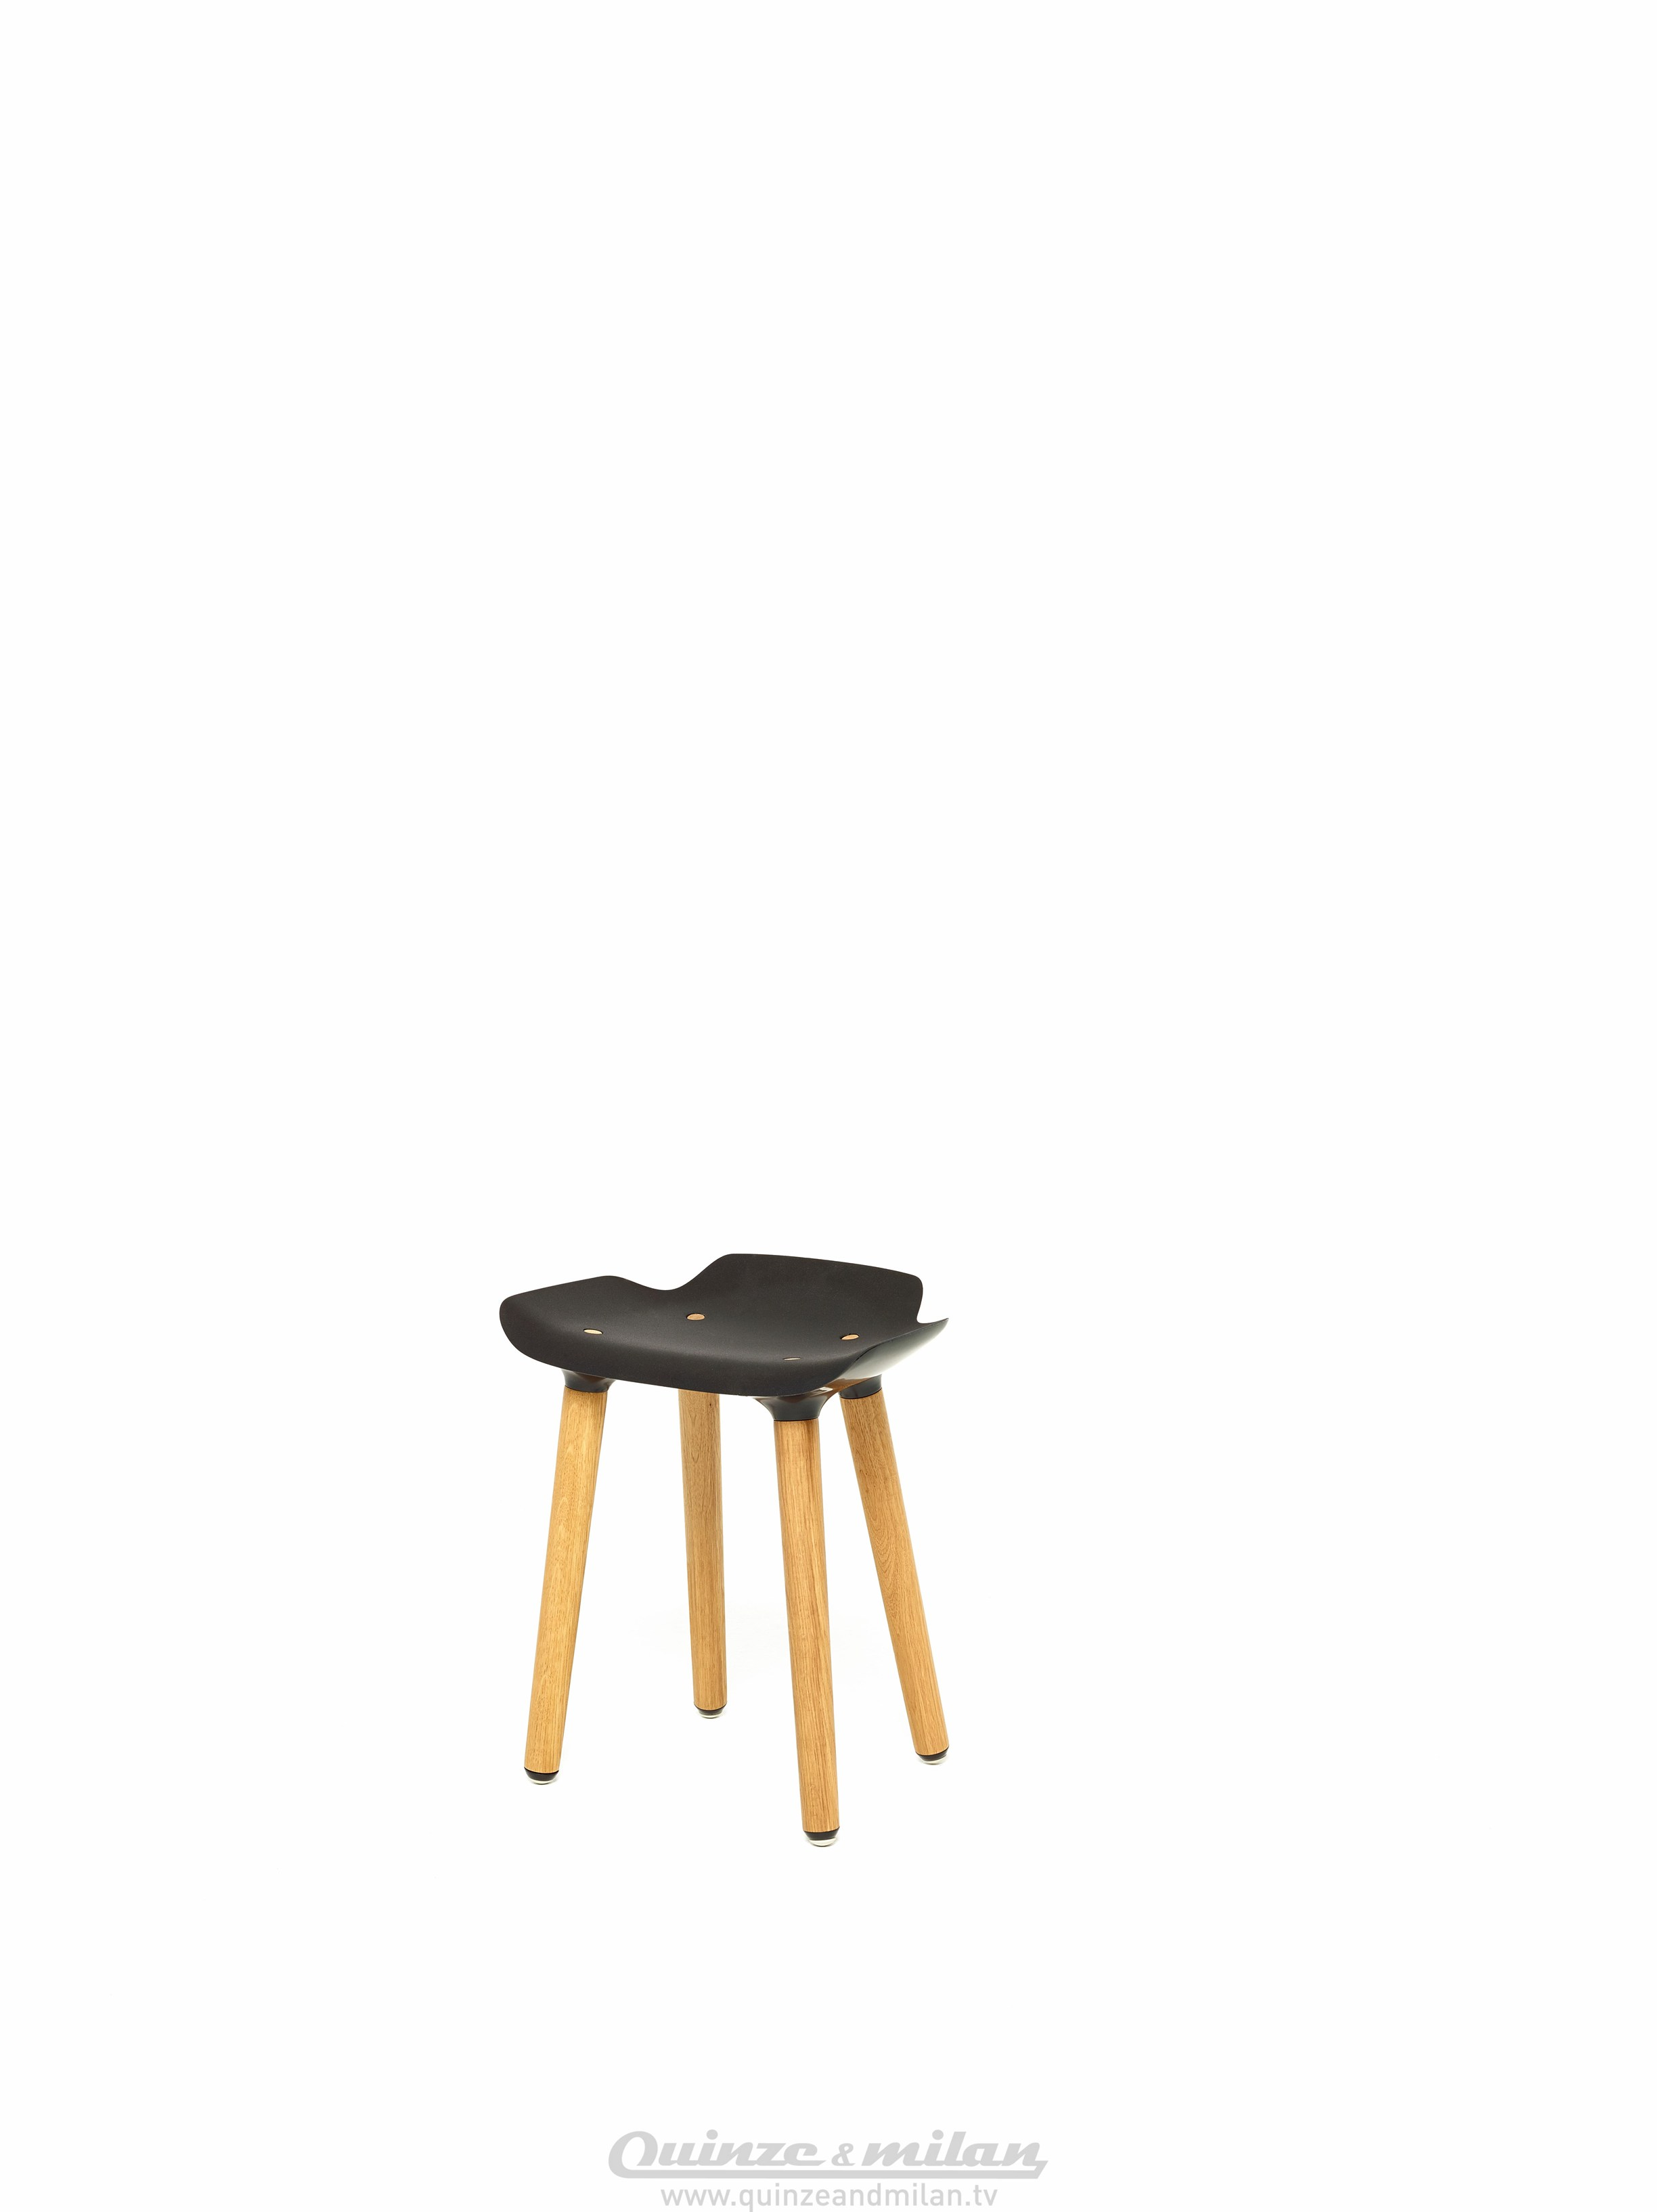 Wonderful image of Low wooden stool PILOT STOOL by Quinze & Milan design Patrick  with #AF721C color and 2448x3268 pixels